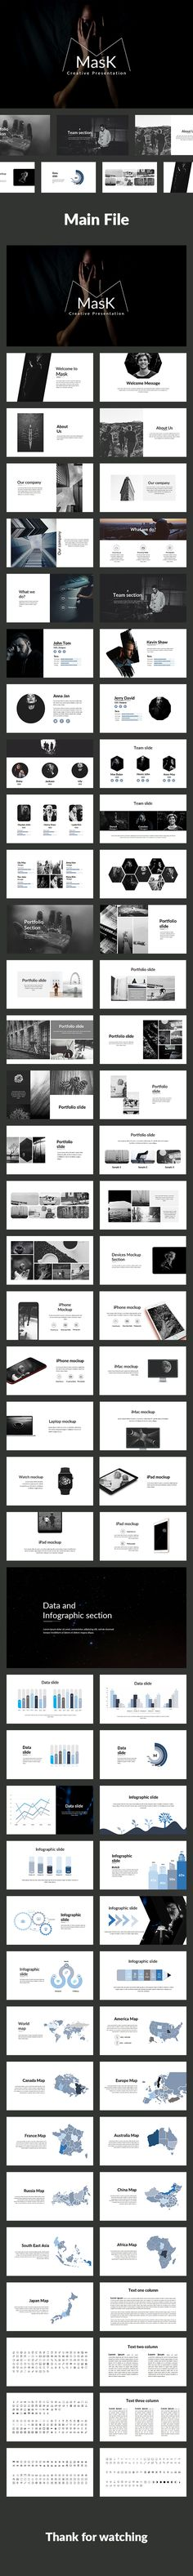 Mask-Creative Powerpoint Template